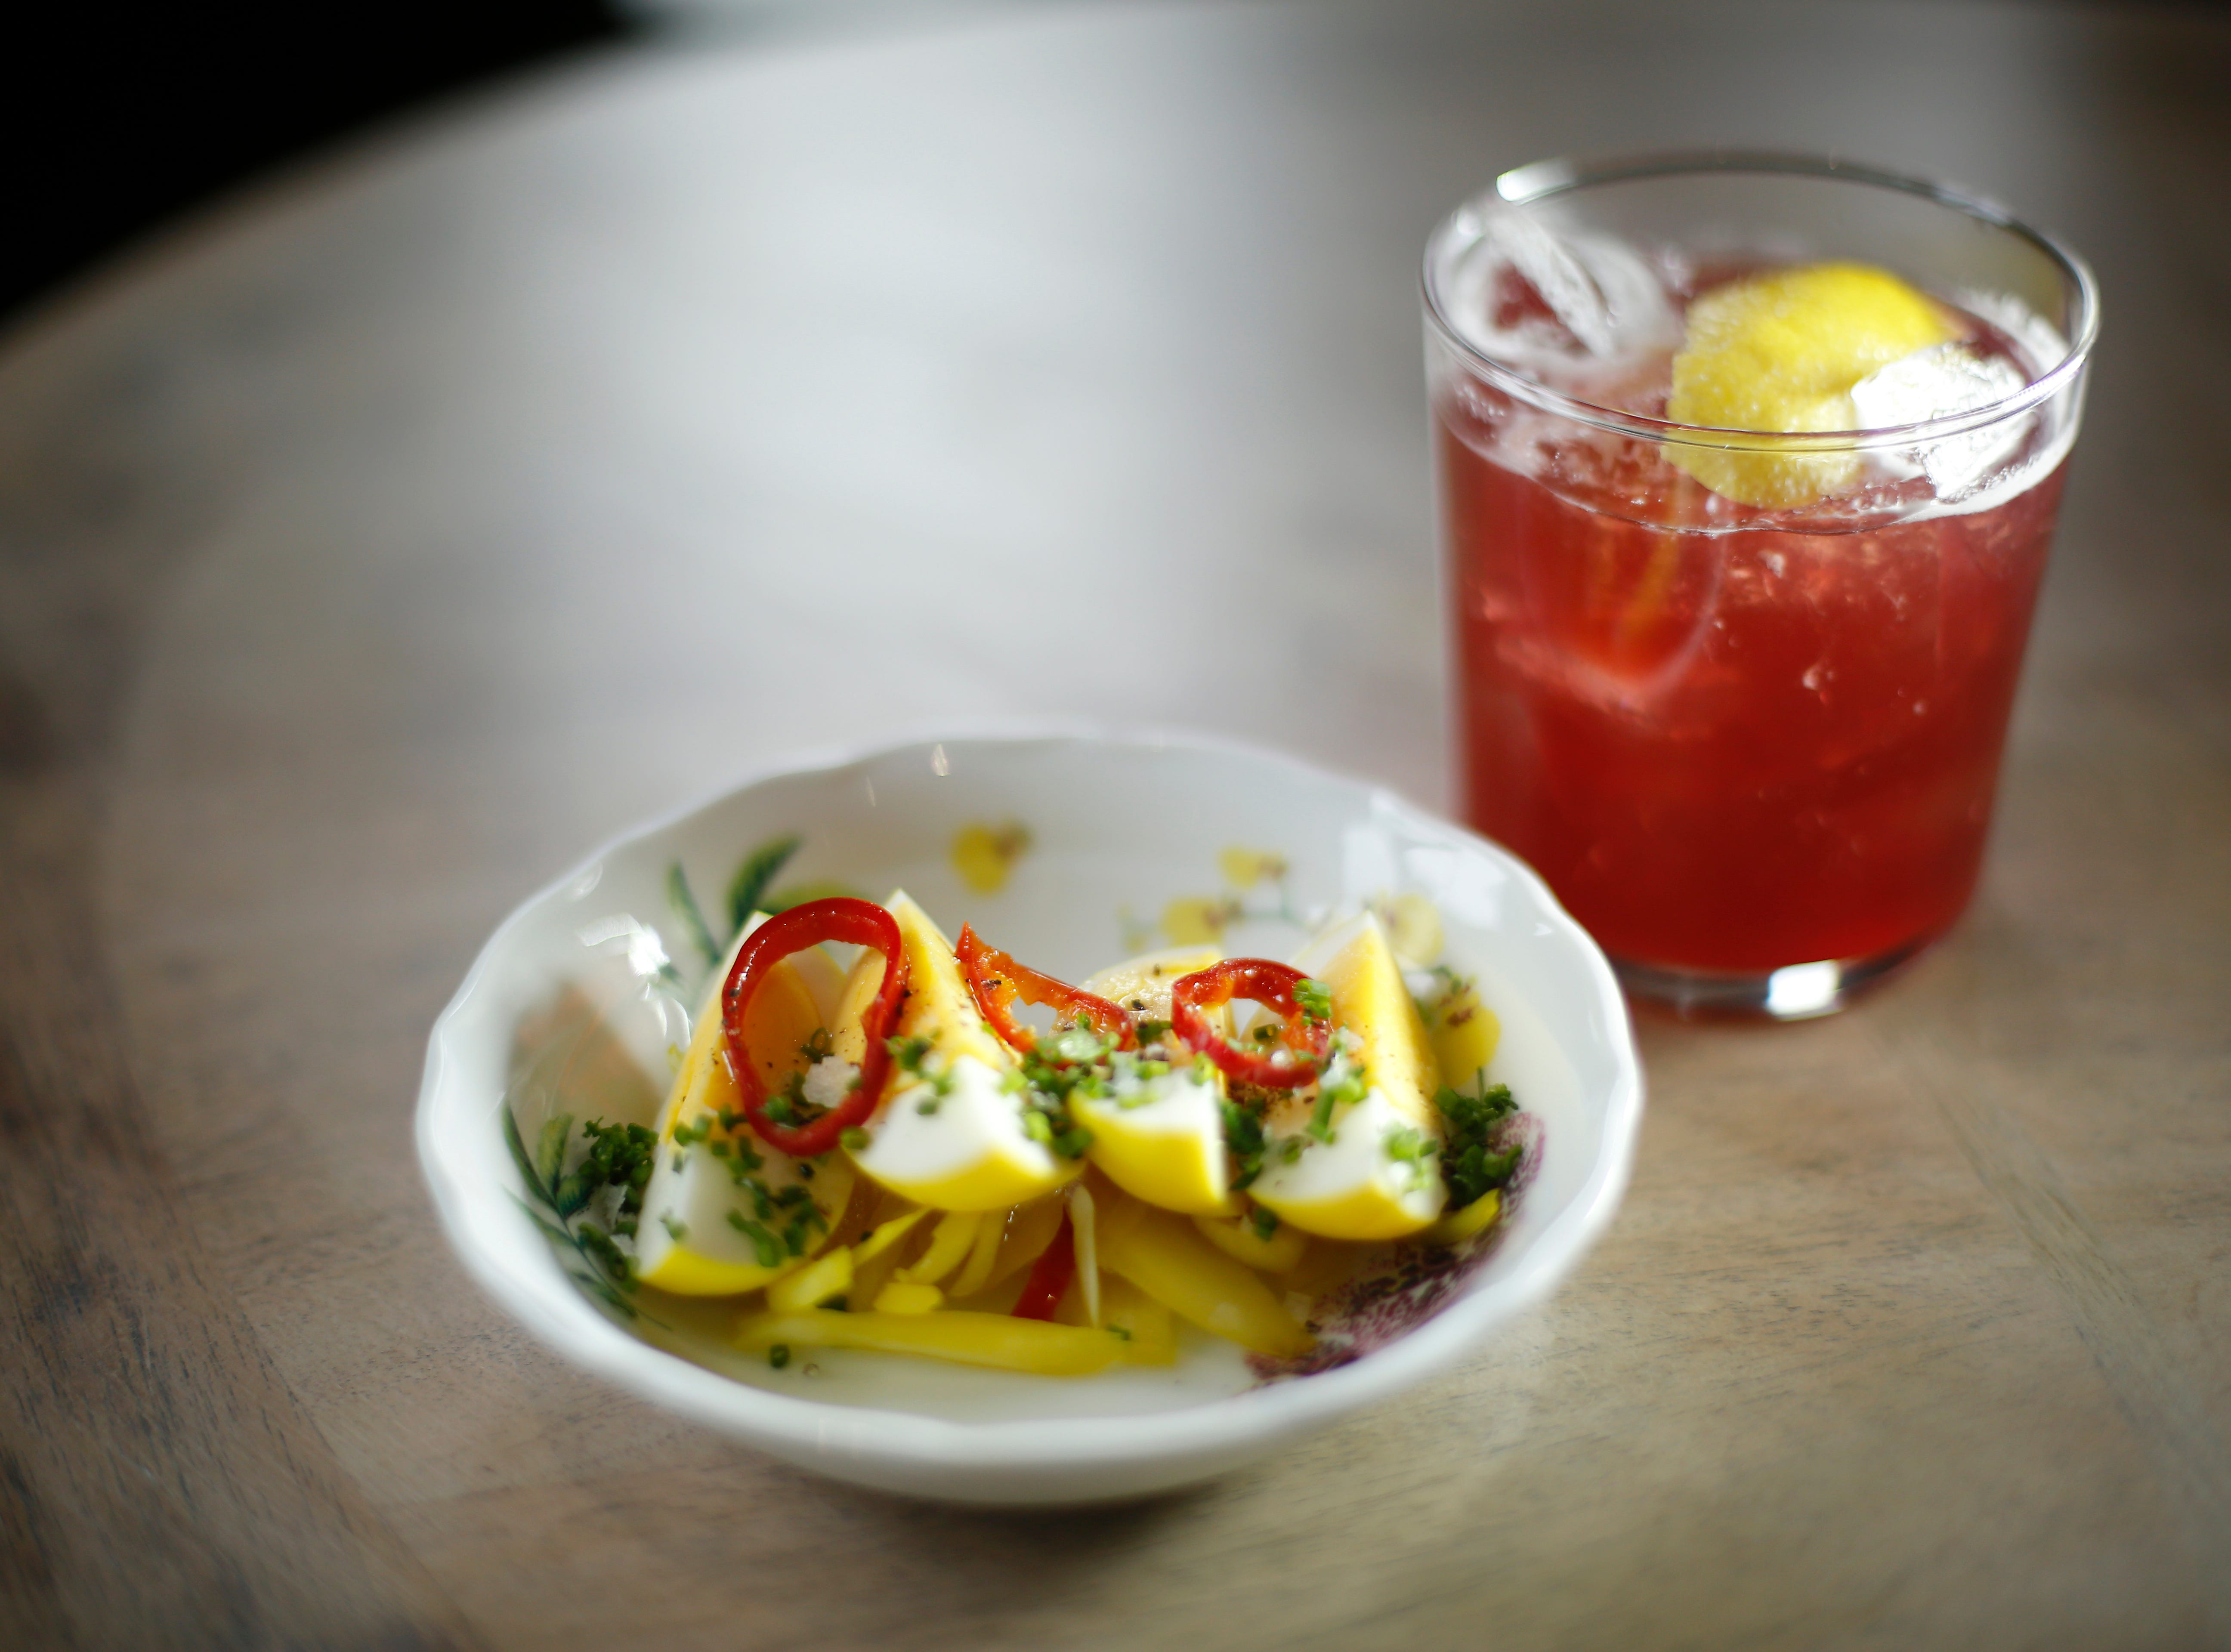 """An order of Mustard Pickled Eggs with an """"I'm Flying"""" cocktail at Karrikin Spirits Co. in the Fairfax neighborhood of Cincinnati on Thursday, Jan. 31, 2019."""